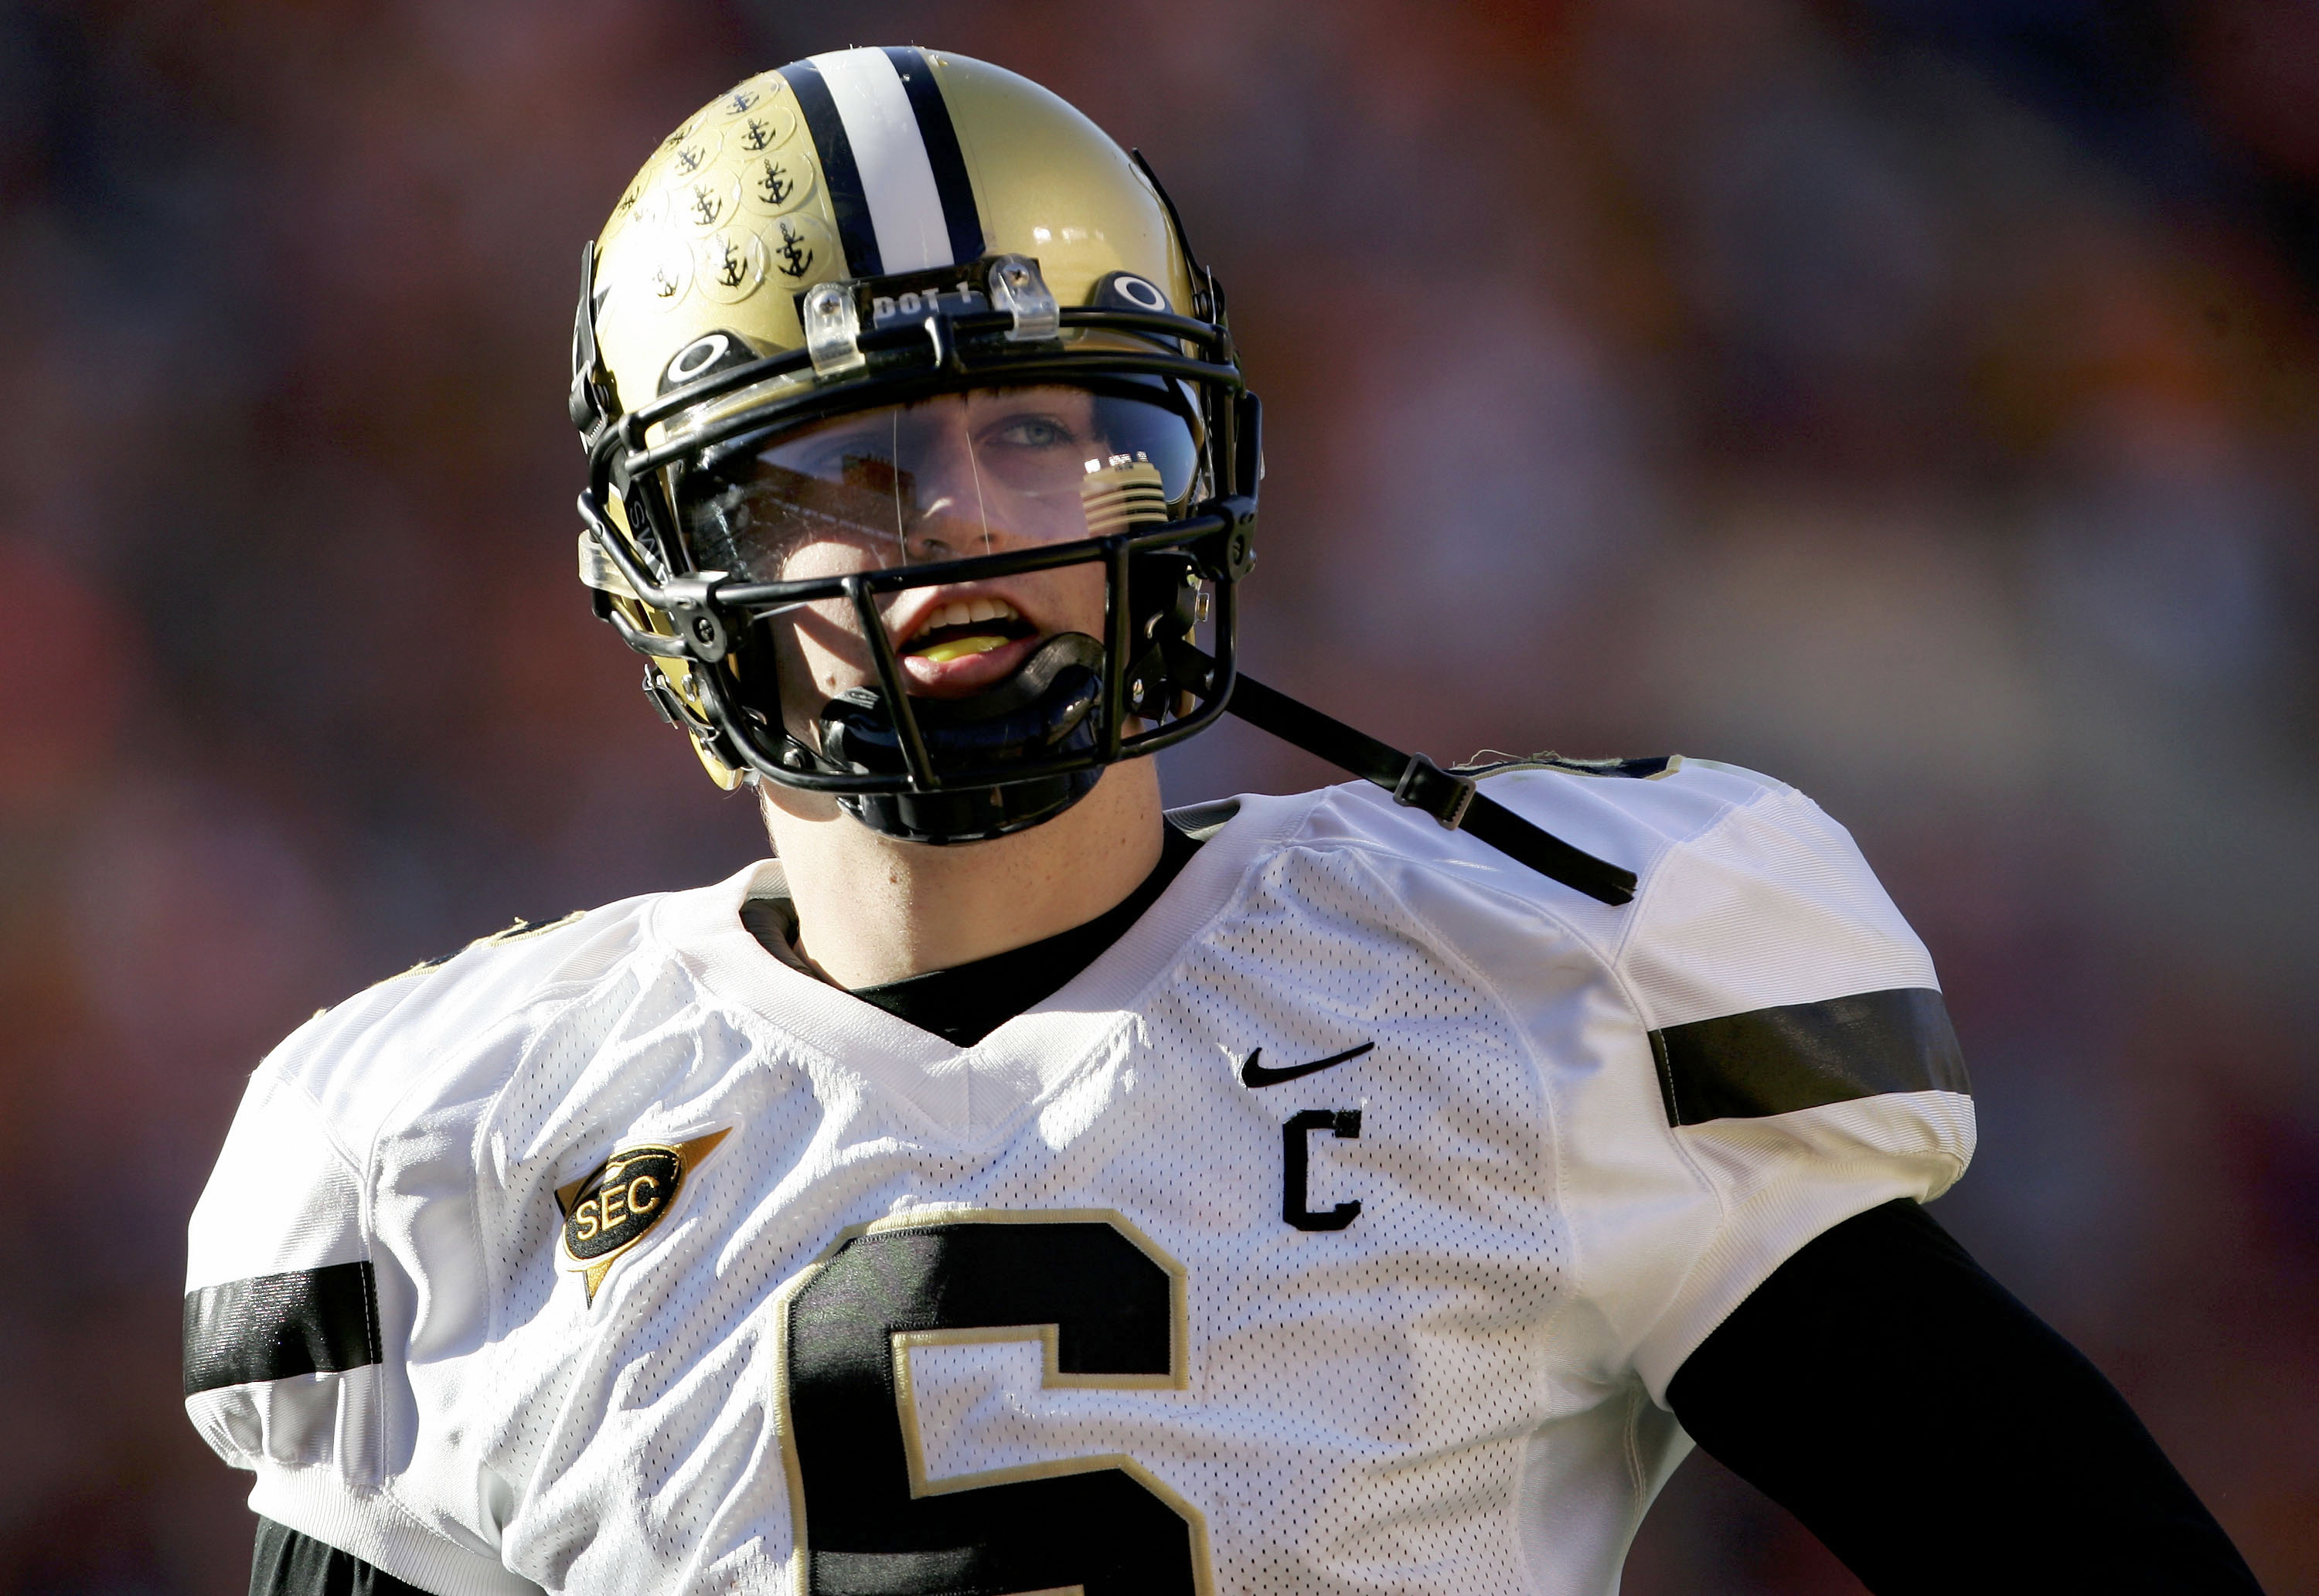 Cutler at Vanderbilt in 2005.